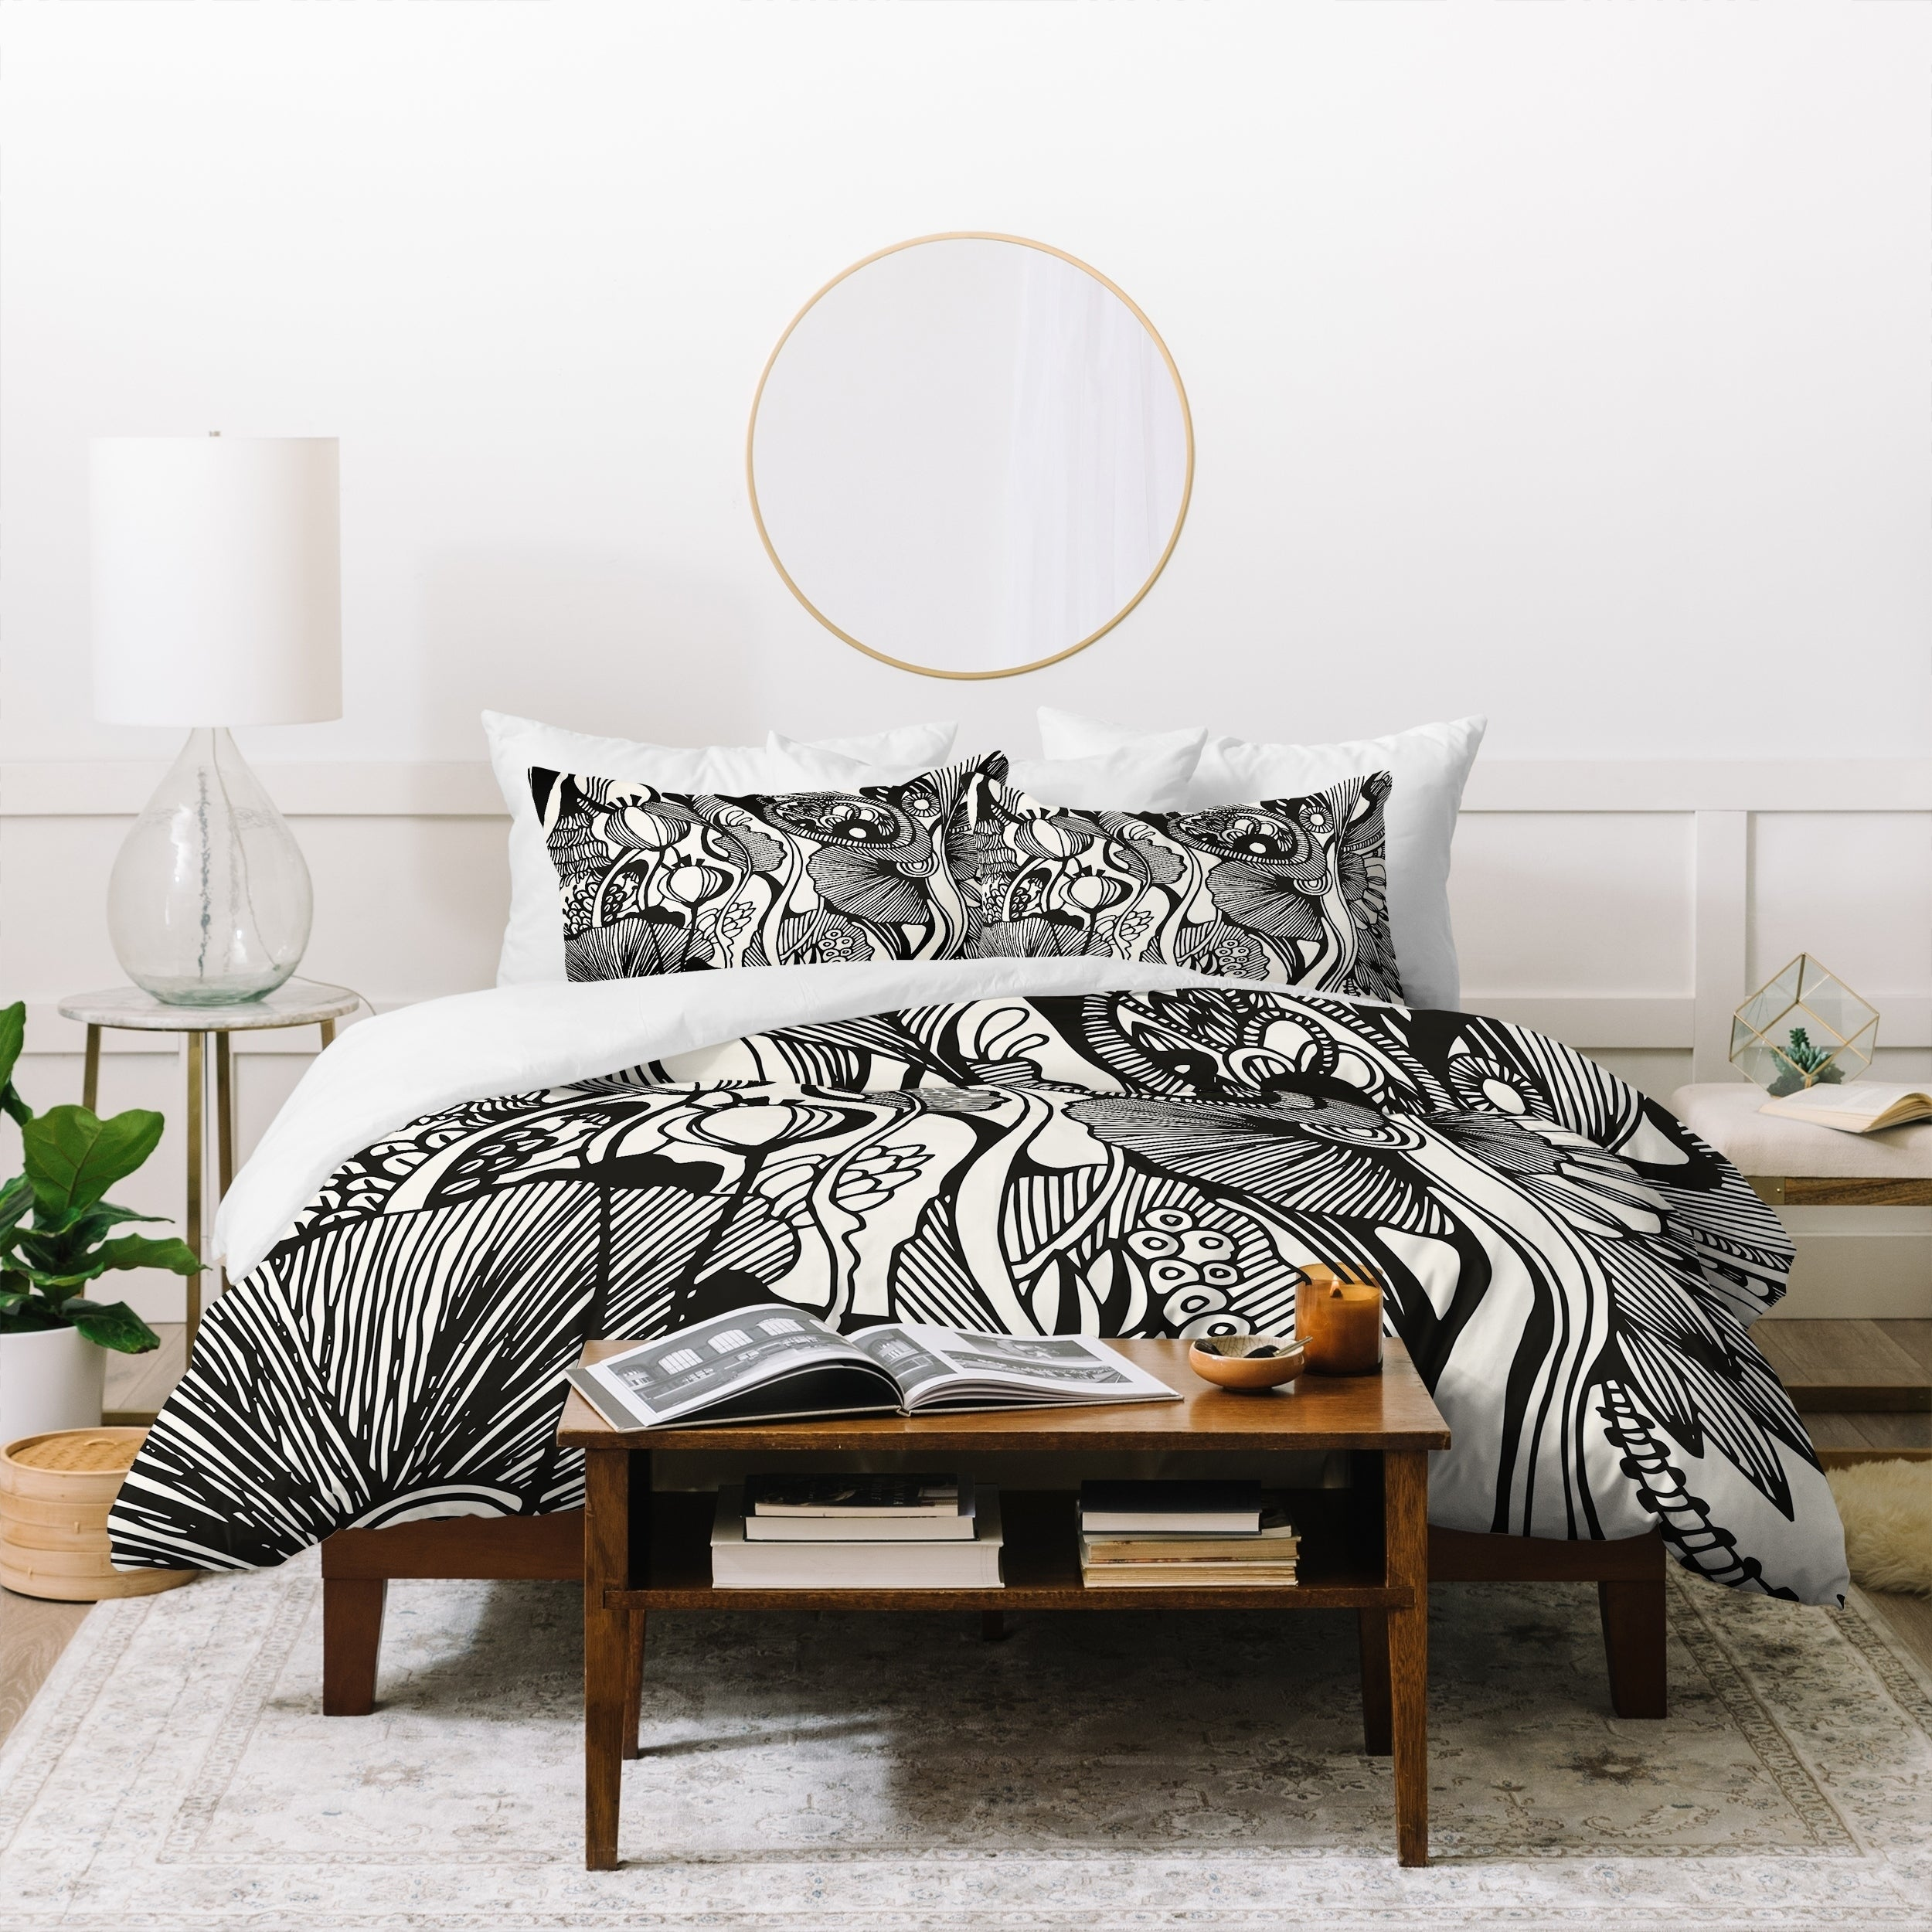 Deny Designs Black And White Botanical Duvet Cover Set 3 Piece Set Overstock 21453981